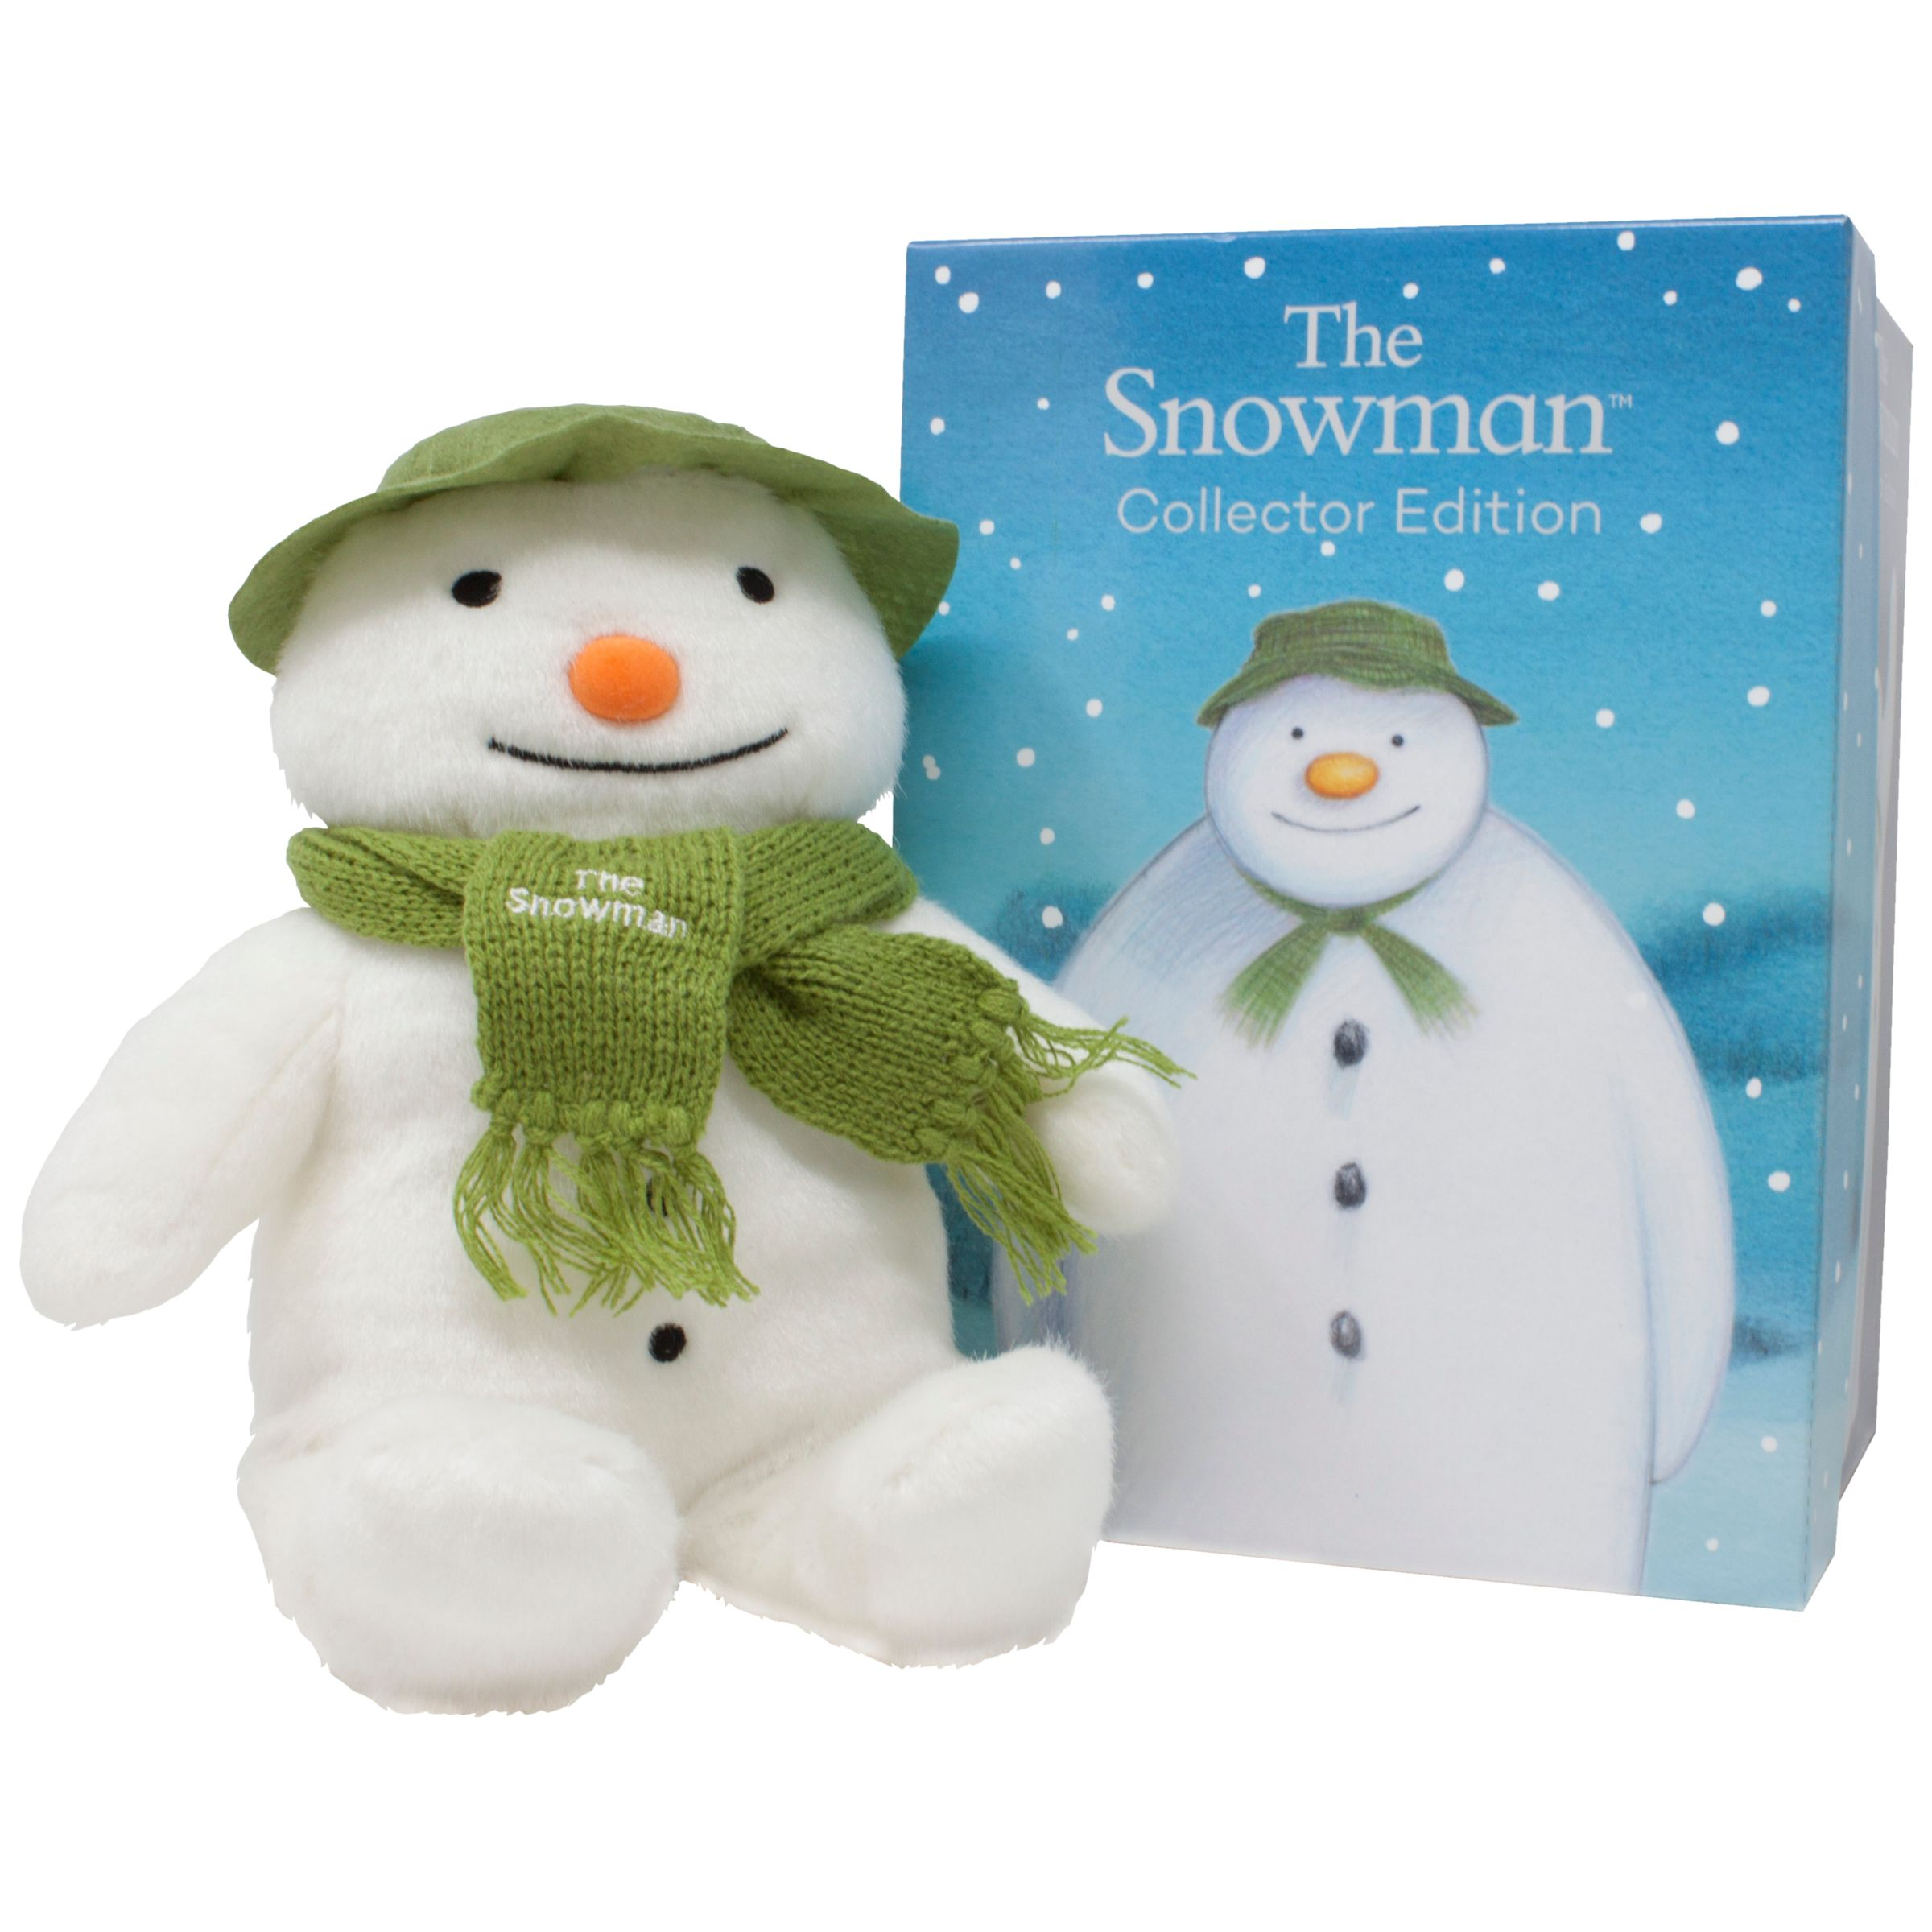 The Snowman The Snowman Collector Edition Soft Toy